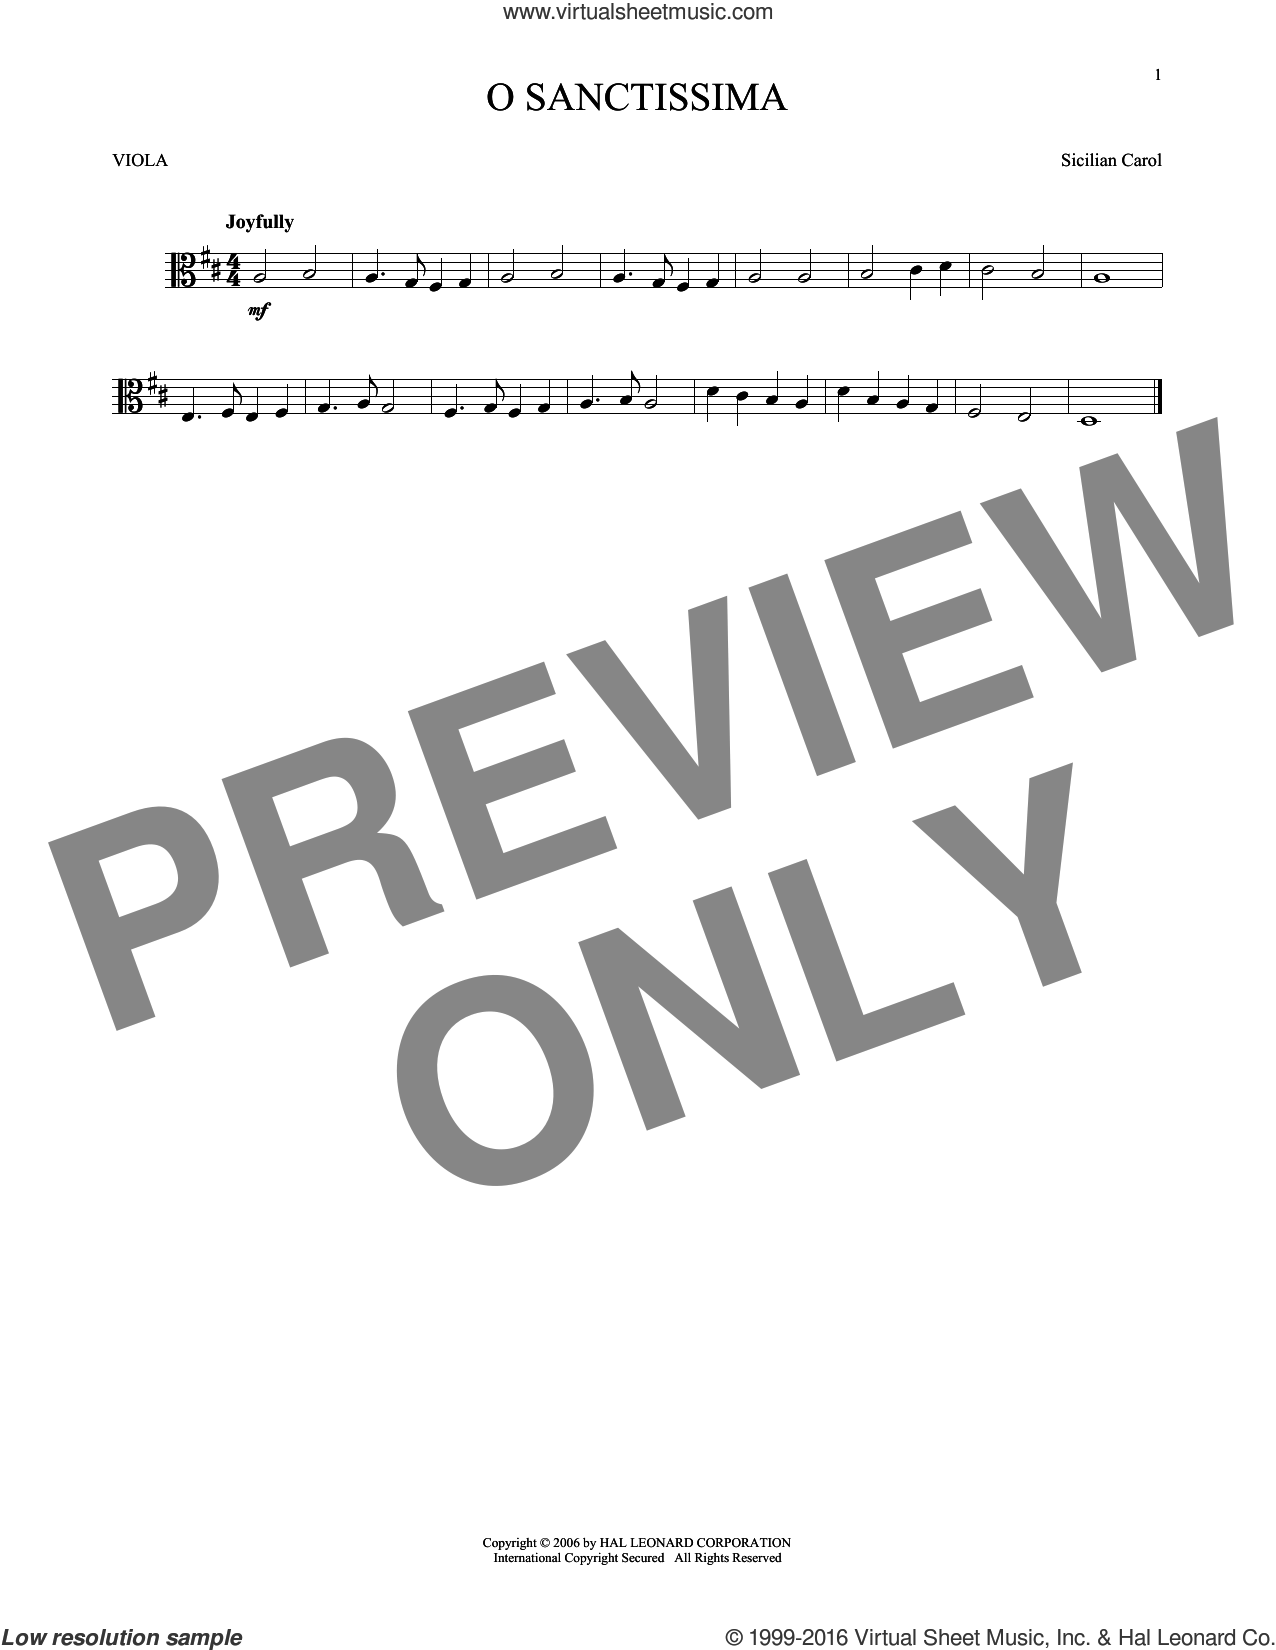 O Sanctissima sheet music for viola solo. Score Image Preview.